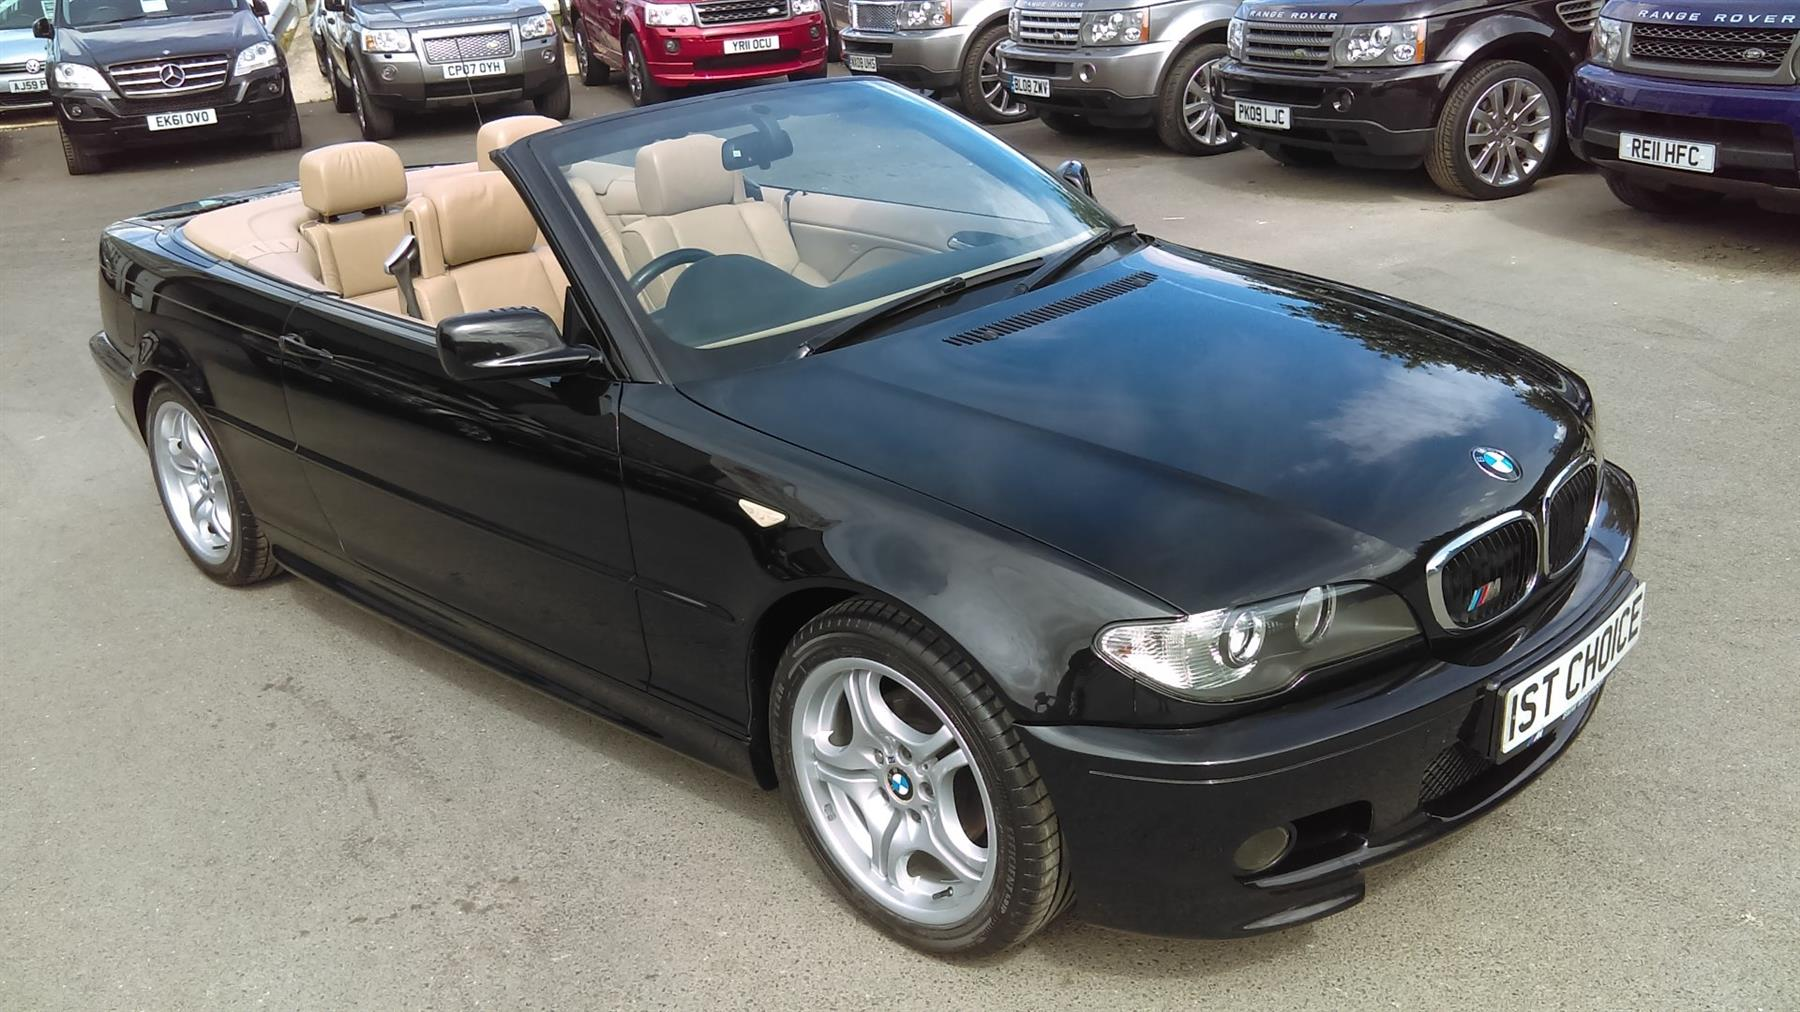 BMW 3 series 318Ci 2006 photo - 4